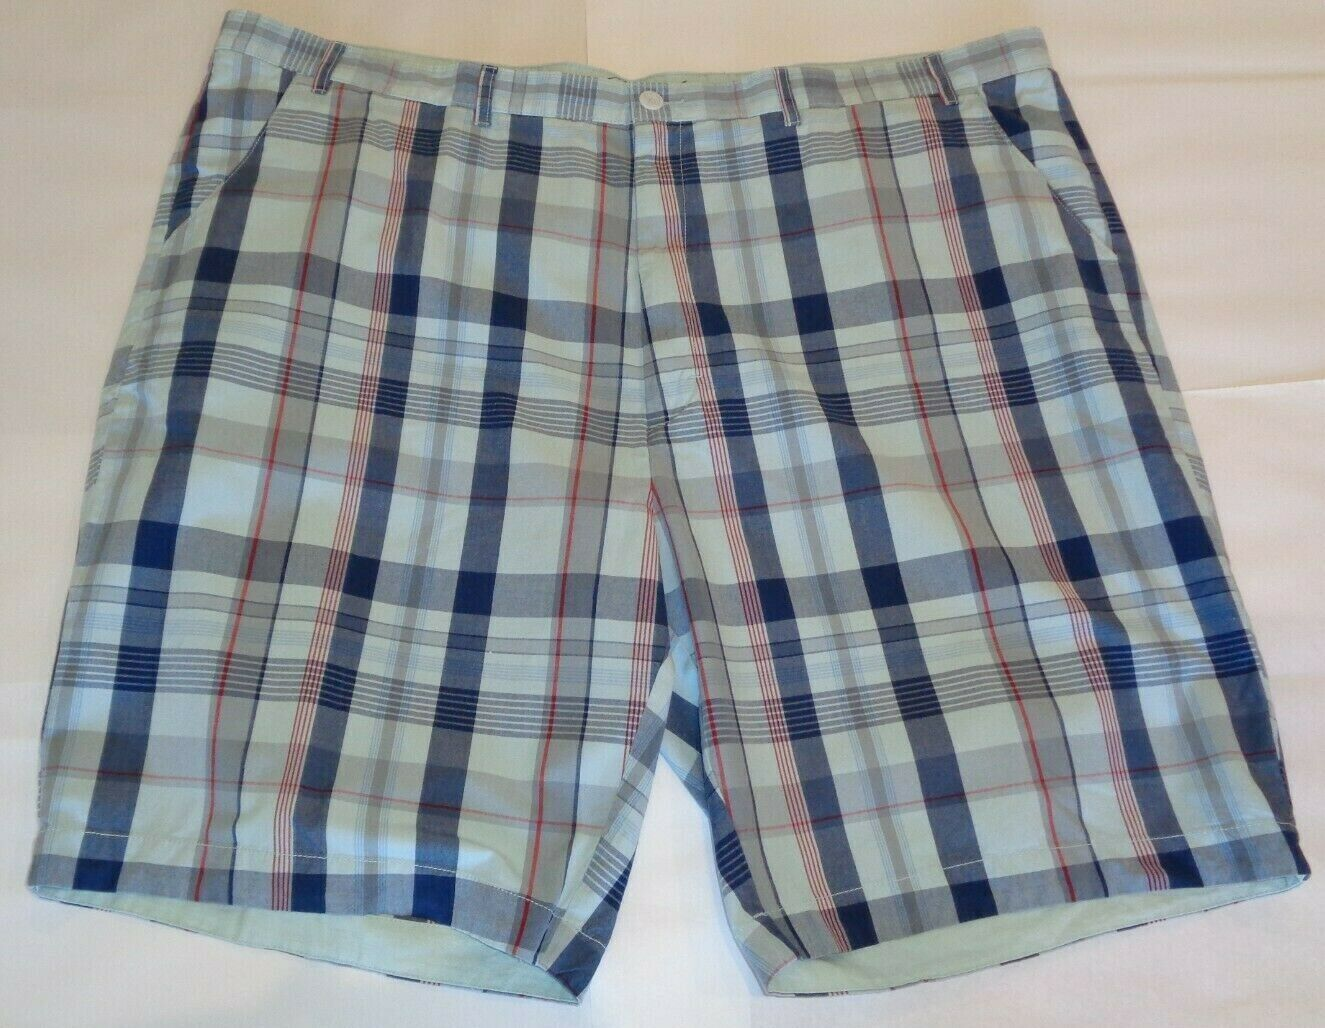 Casuals Roundtree & Yorke Size 52 STRAIGHT FIT Light Blue Cotton New Mens Shorts